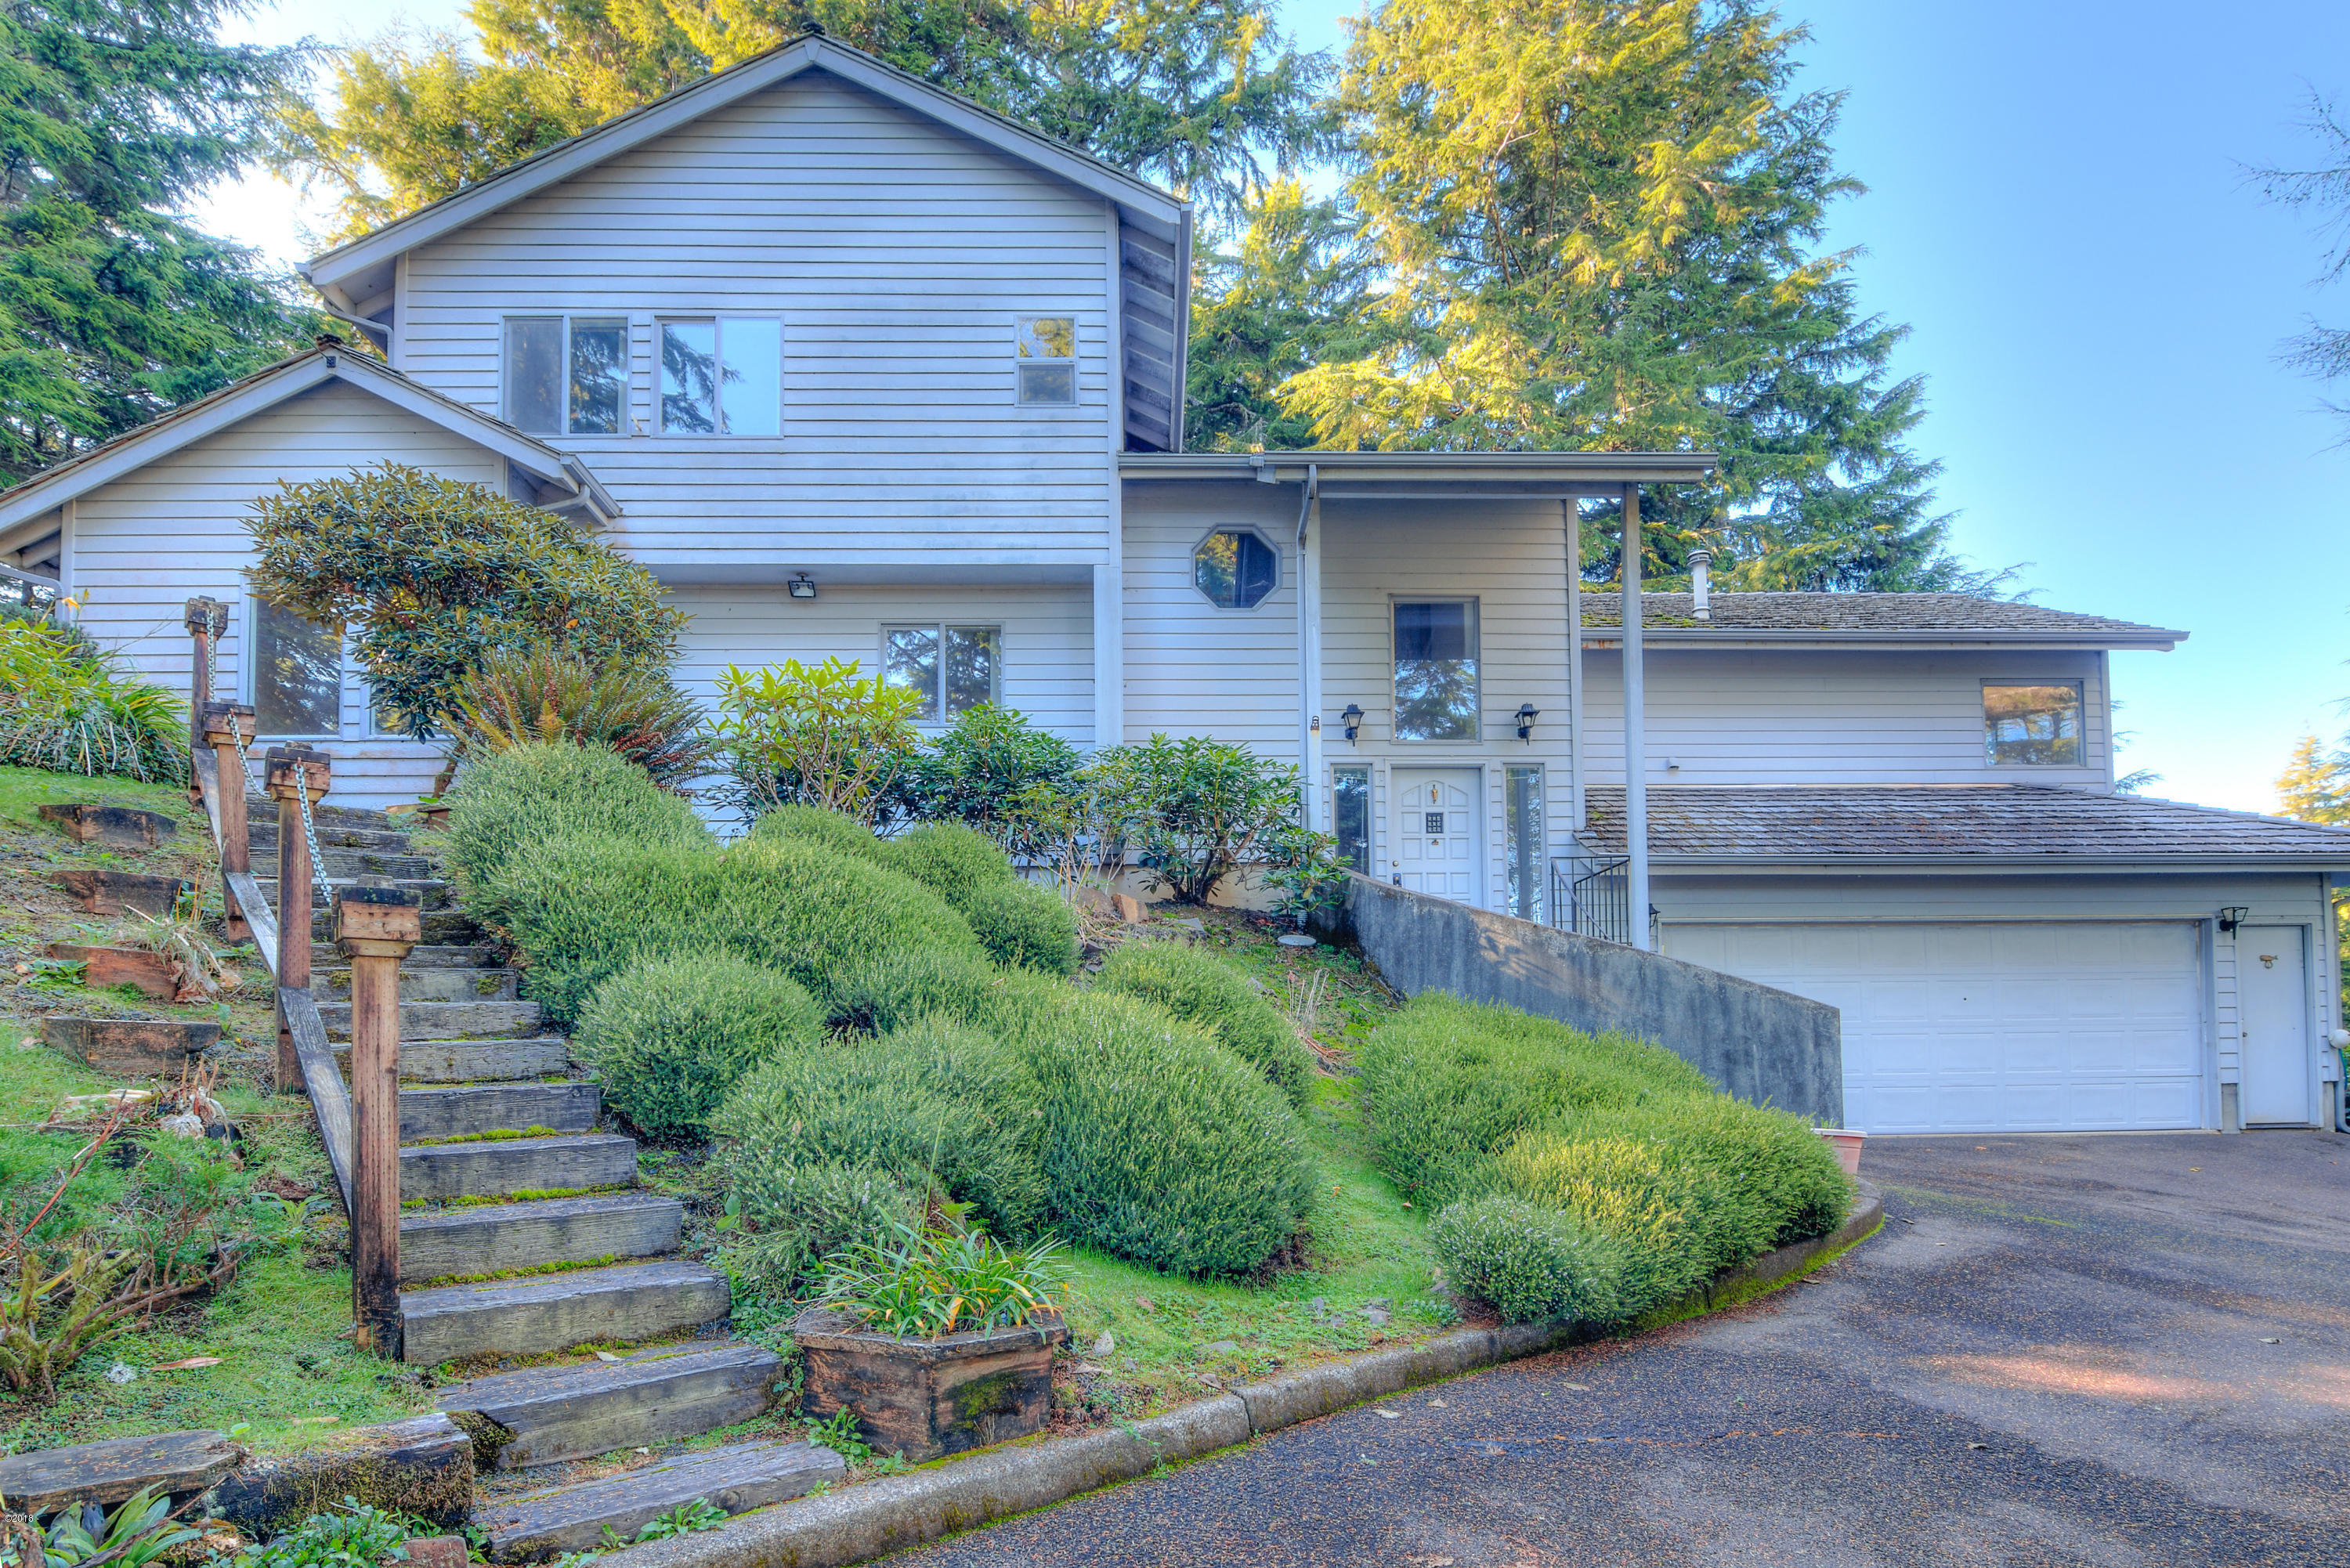 532 Salishan Dr, Gleneden Beach, OR 97388 - Exterior east side